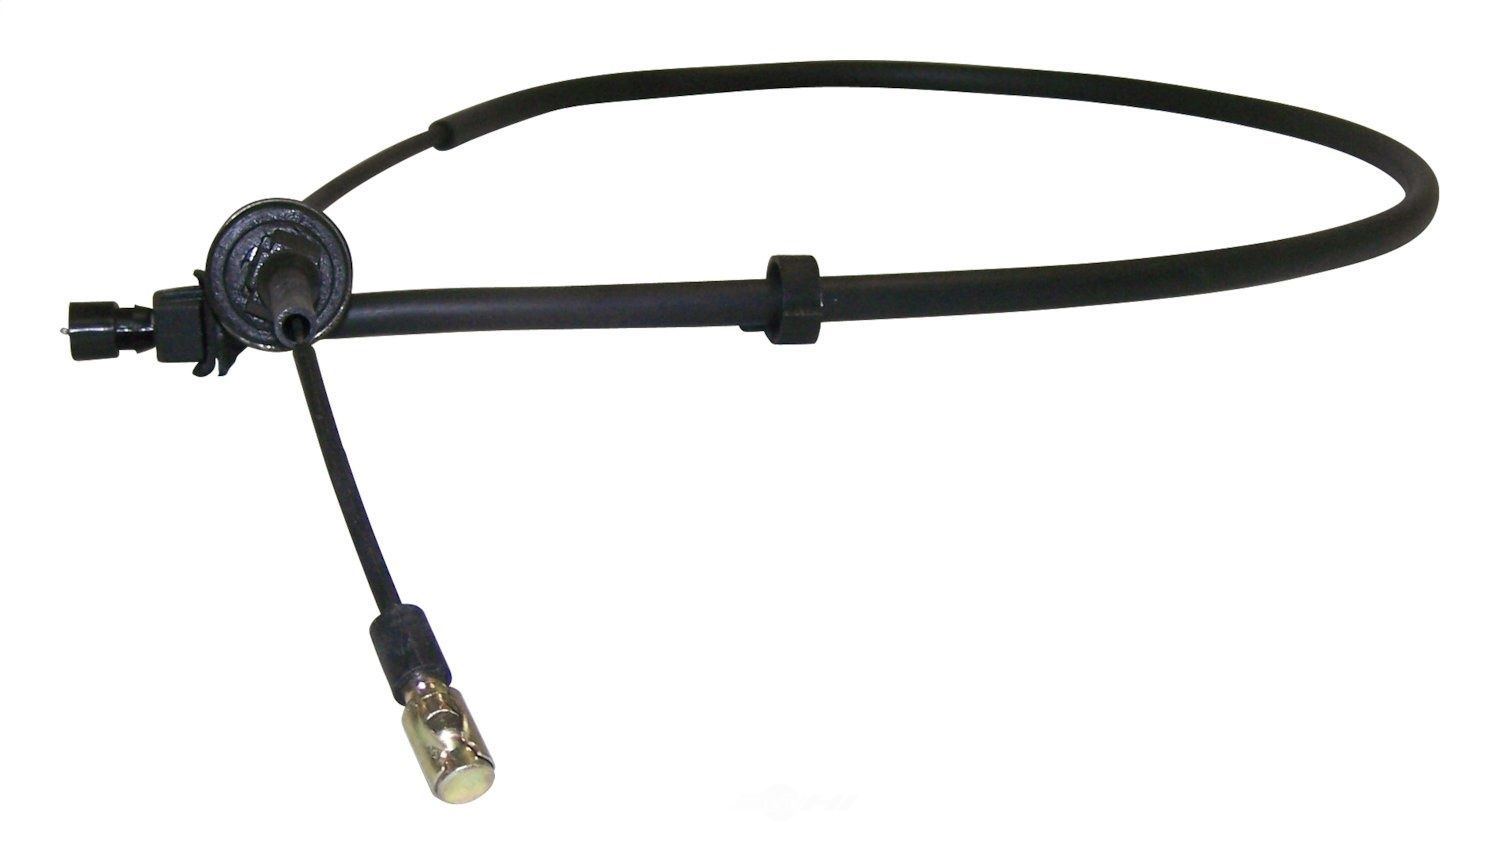 CROWN AUTOMOTIVE SALES CO. - Throttle Cable - CAJ 52079382